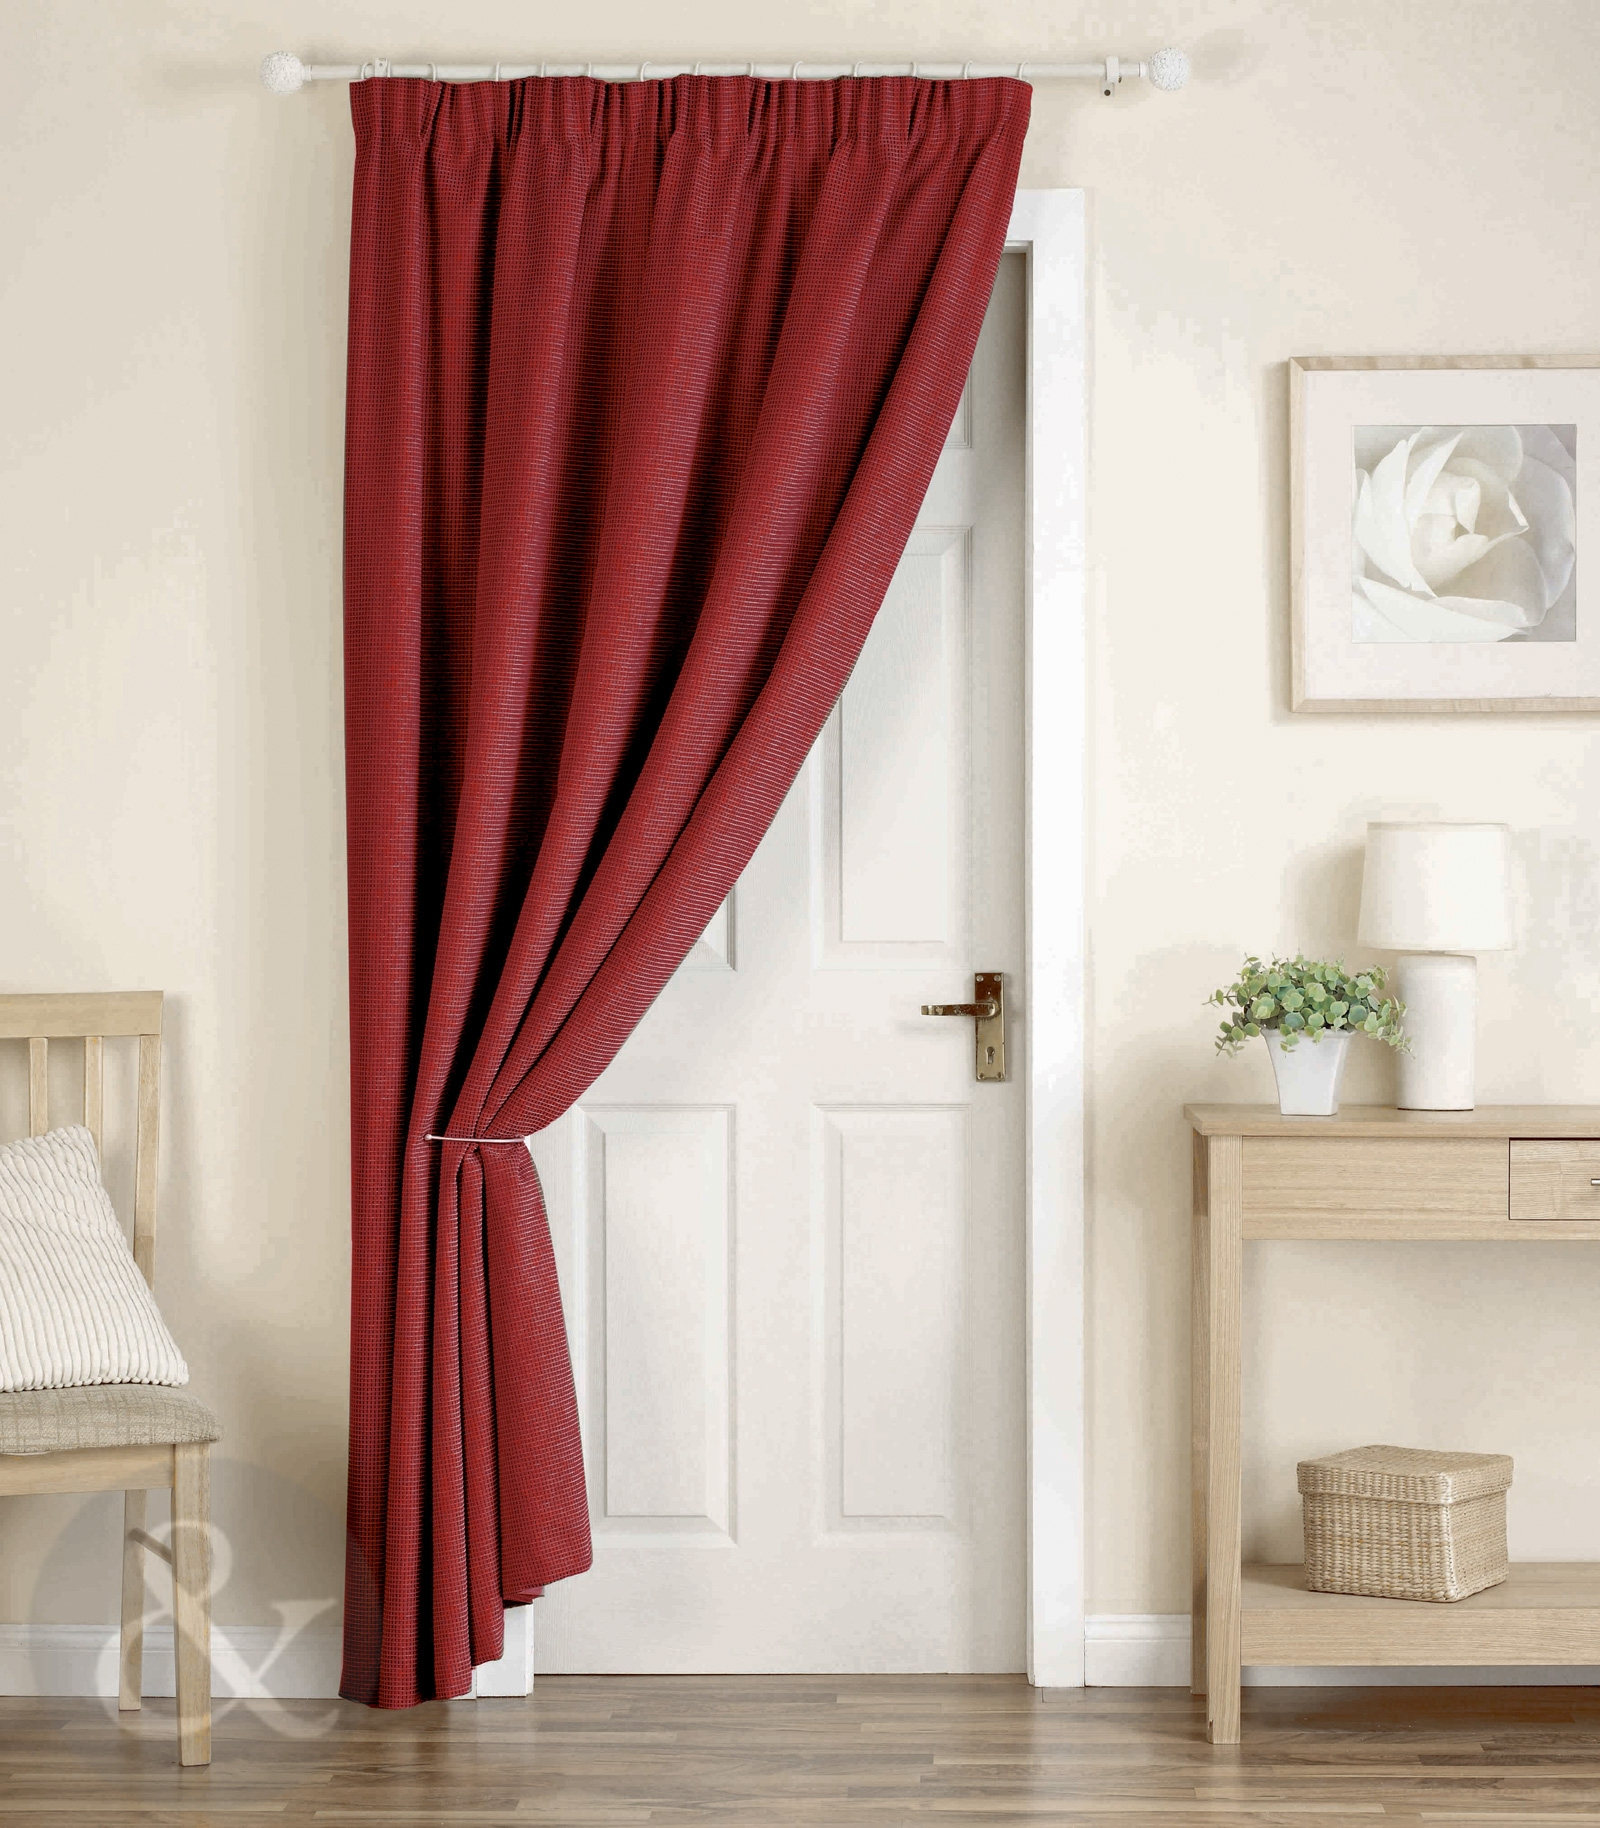 Thick Heavy Door Curtains Ready Made Thermal Lined 66 X 84 Door Intended For Heavy Lined Curtains (Image 13 of 15)